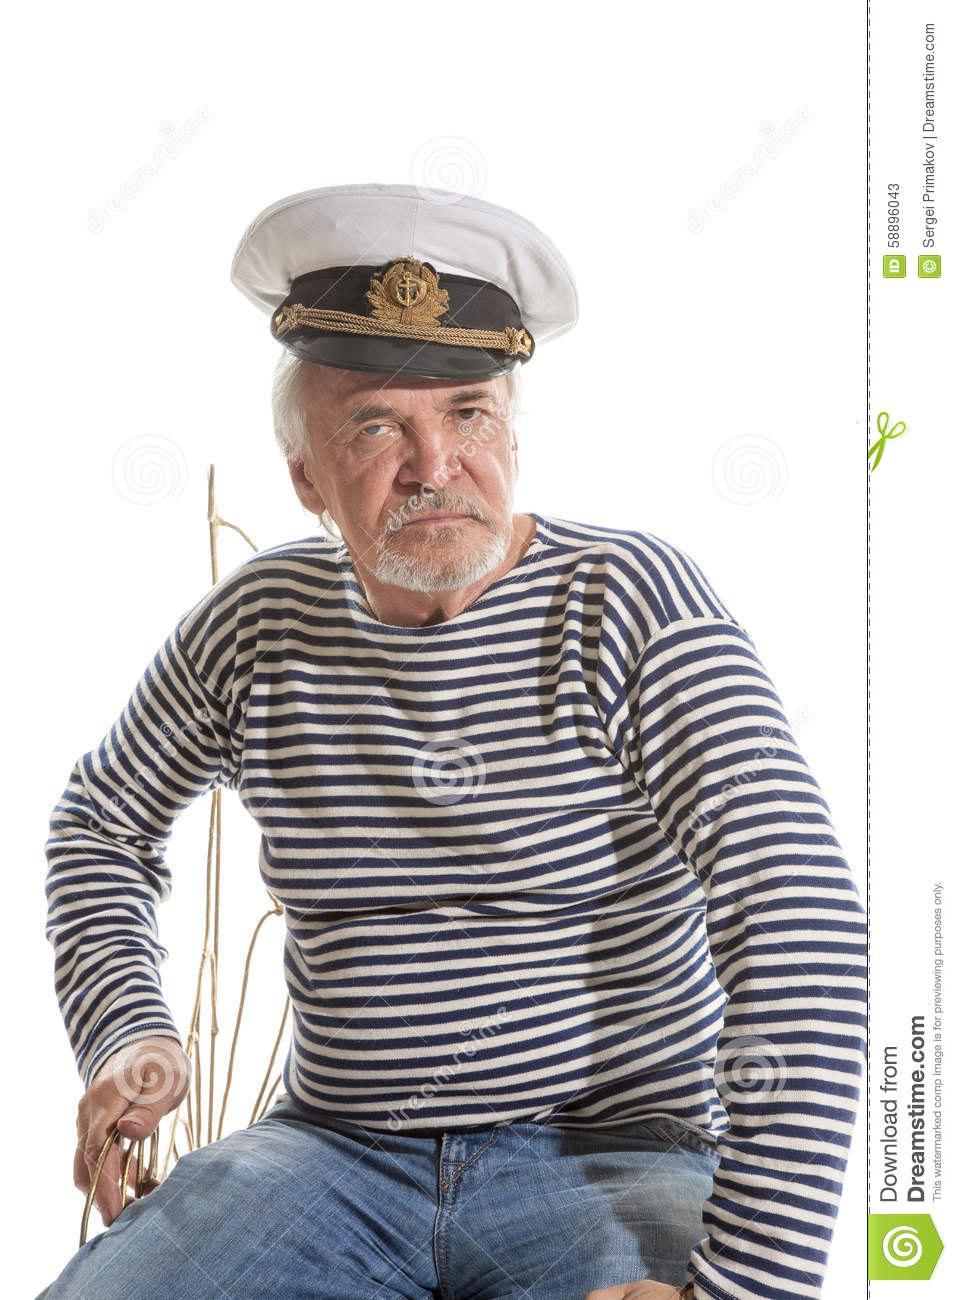 ec2e6f8dbefe5 Old sailor man stock image. Image of elderly